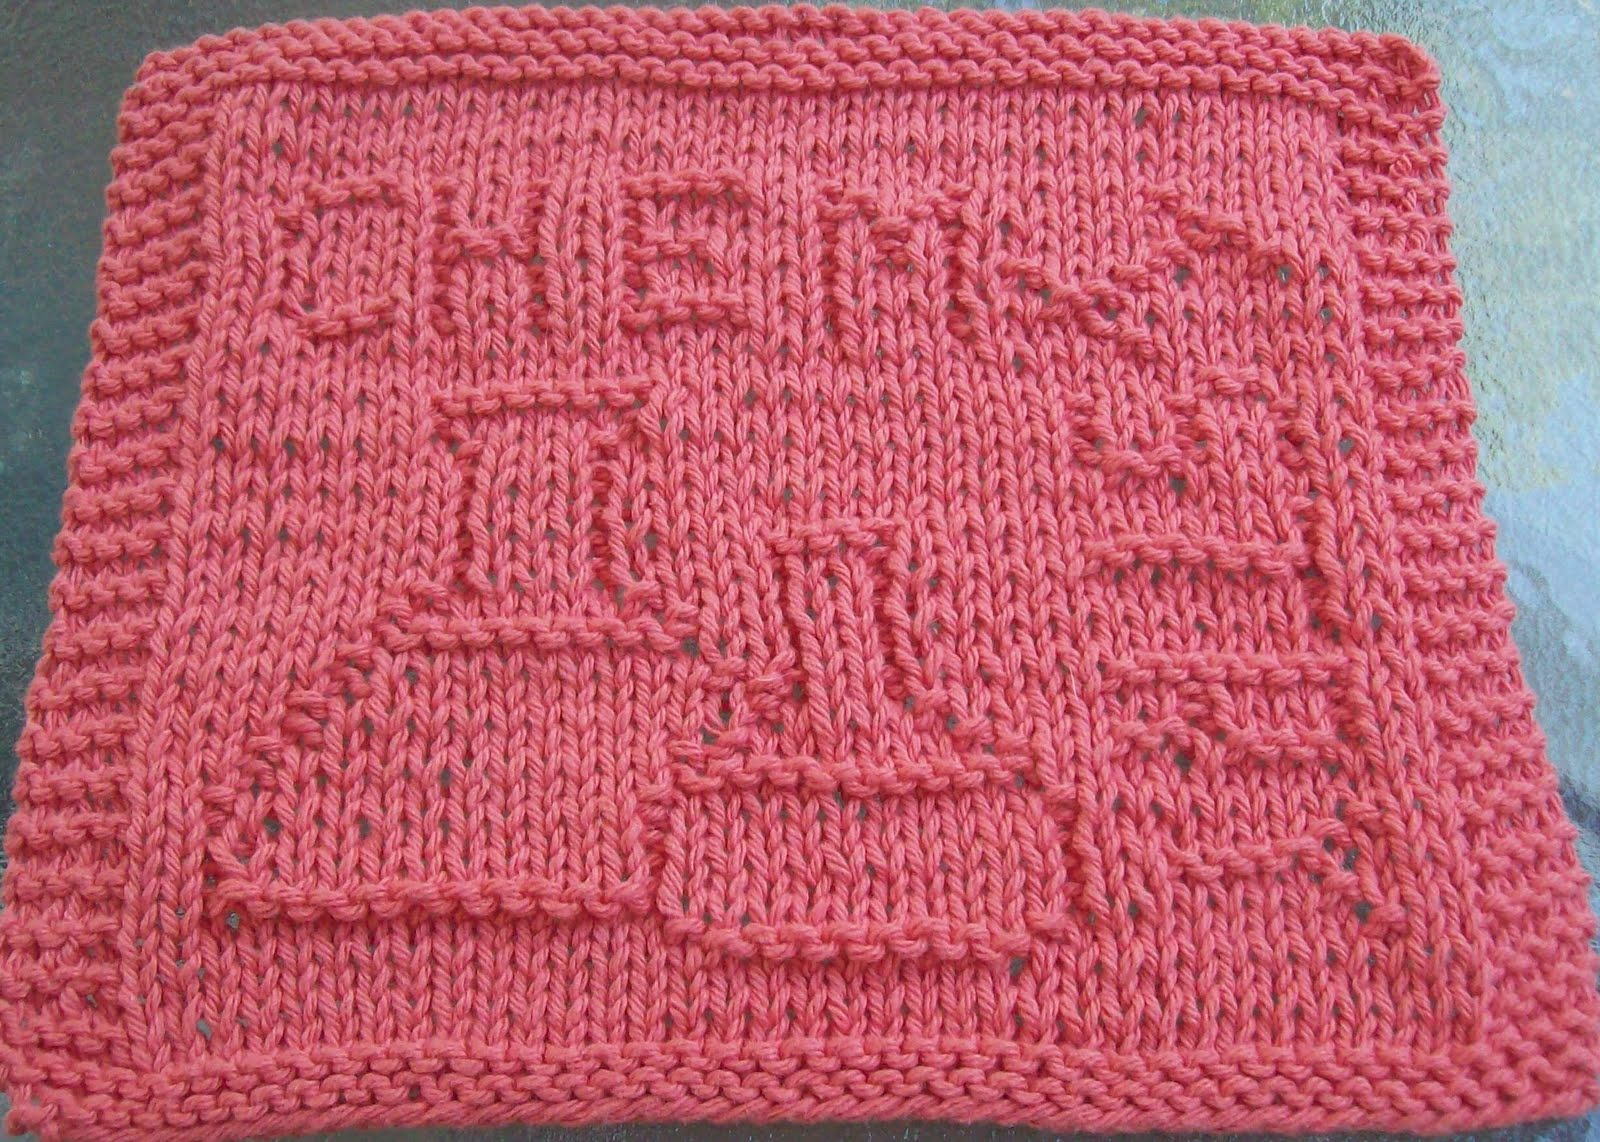 Dishcloth Knitting Pattern : Knitted Dishcloth Patterns A Knitting Blog